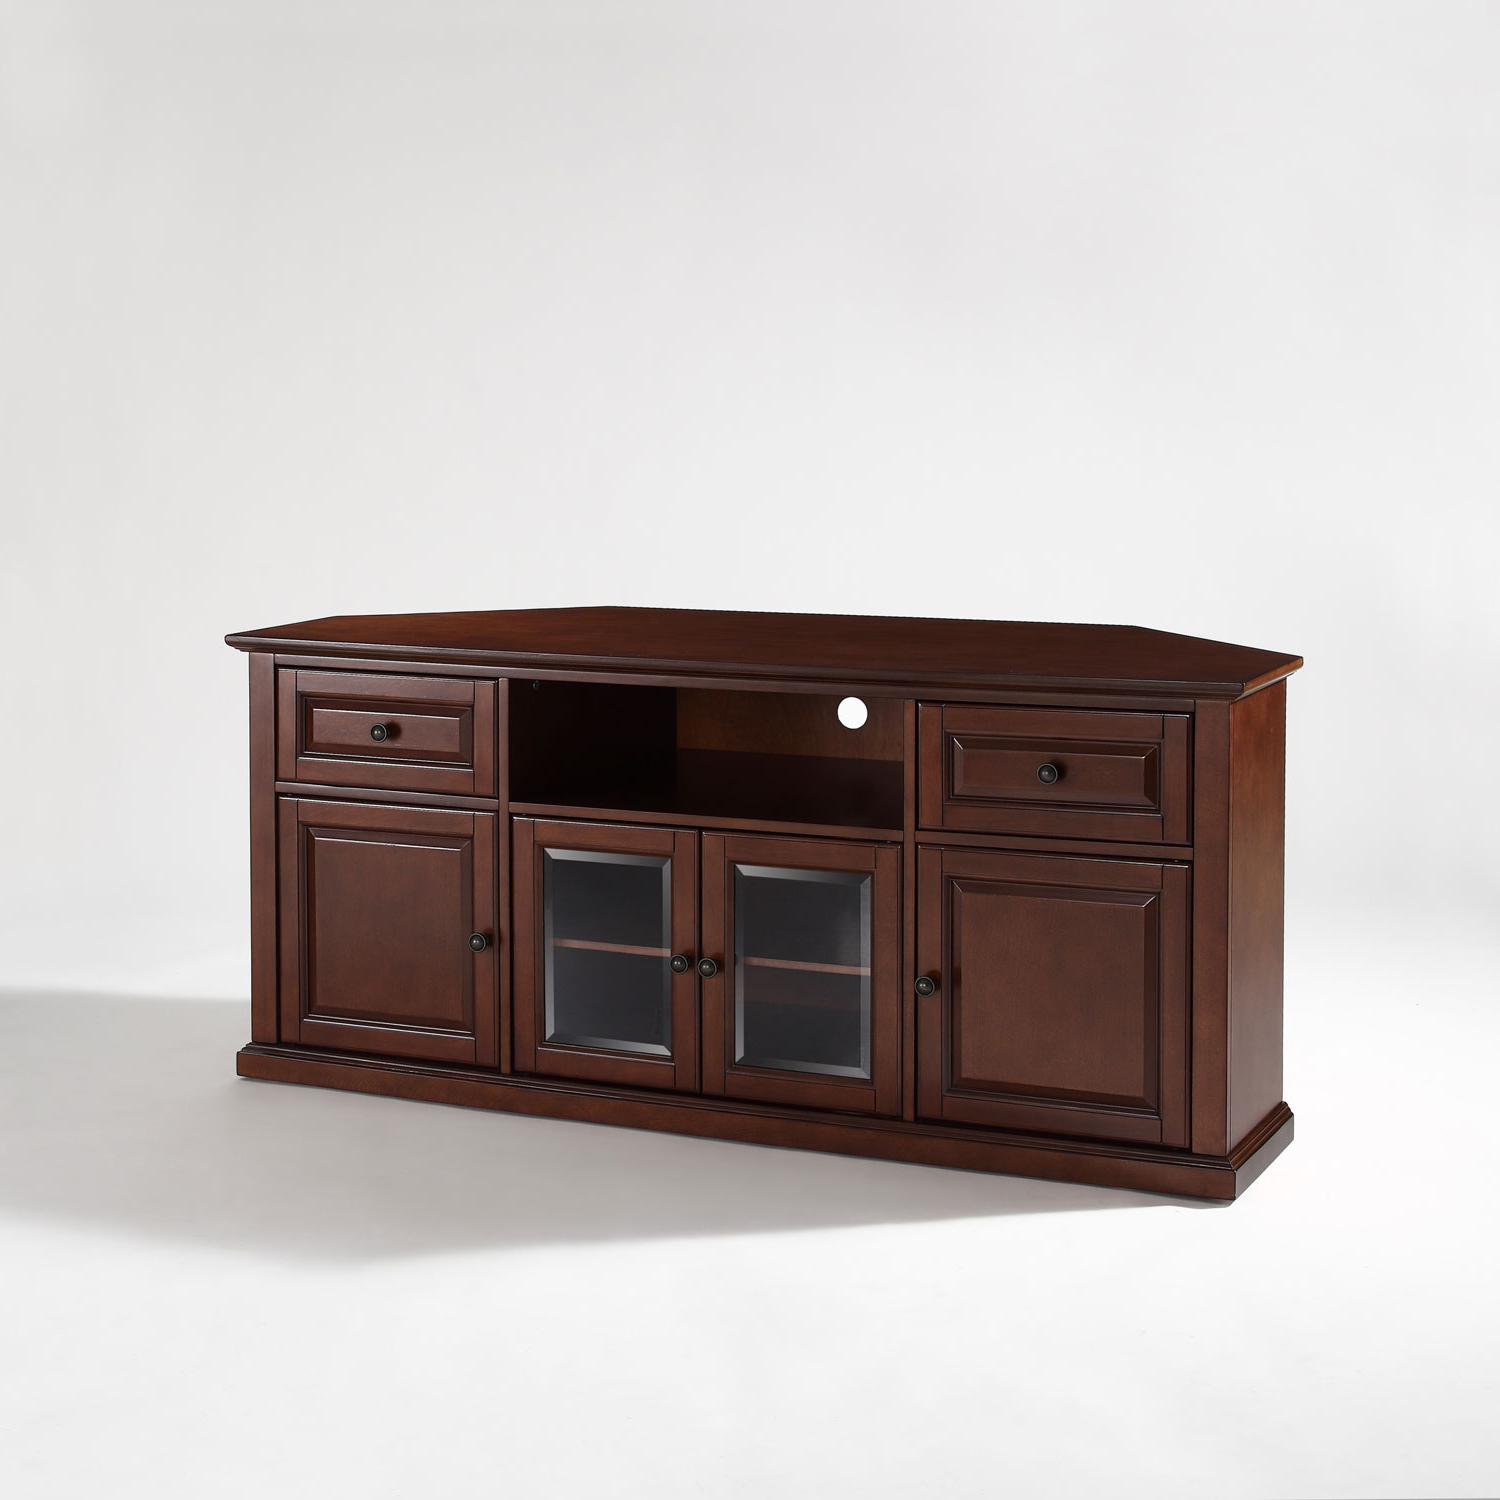 Fashionable Tv Stands Cabinets Throughout Crosley Furniture 60 Inch Corner Tv Stand In Vintage Mahogany (Gallery 16 of 20)